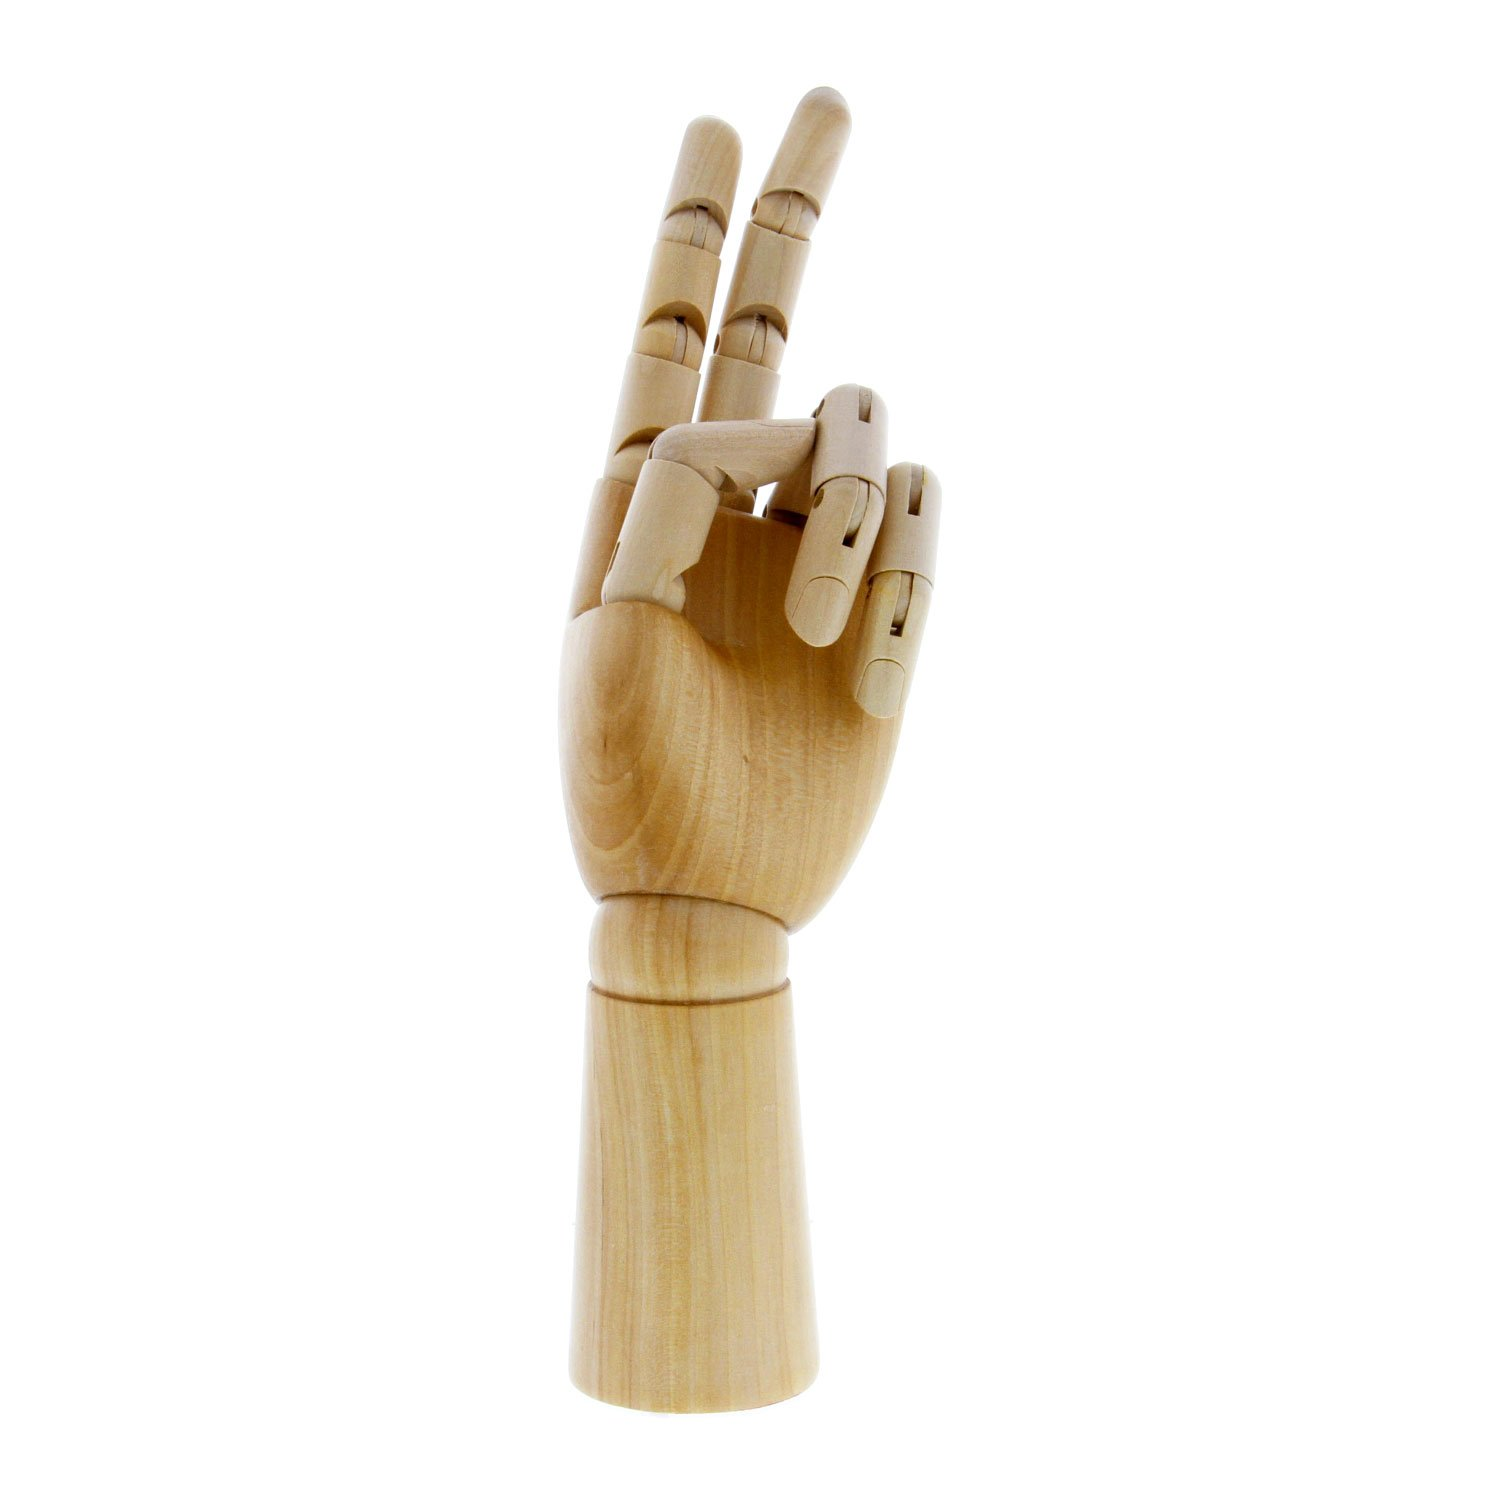 US Art Supply Wood Artist Drawing Manikin Articulated Mannequin with Wooden Flexible Fingers - Perfect For Drawing the Human Hand (12'' Left Hand)